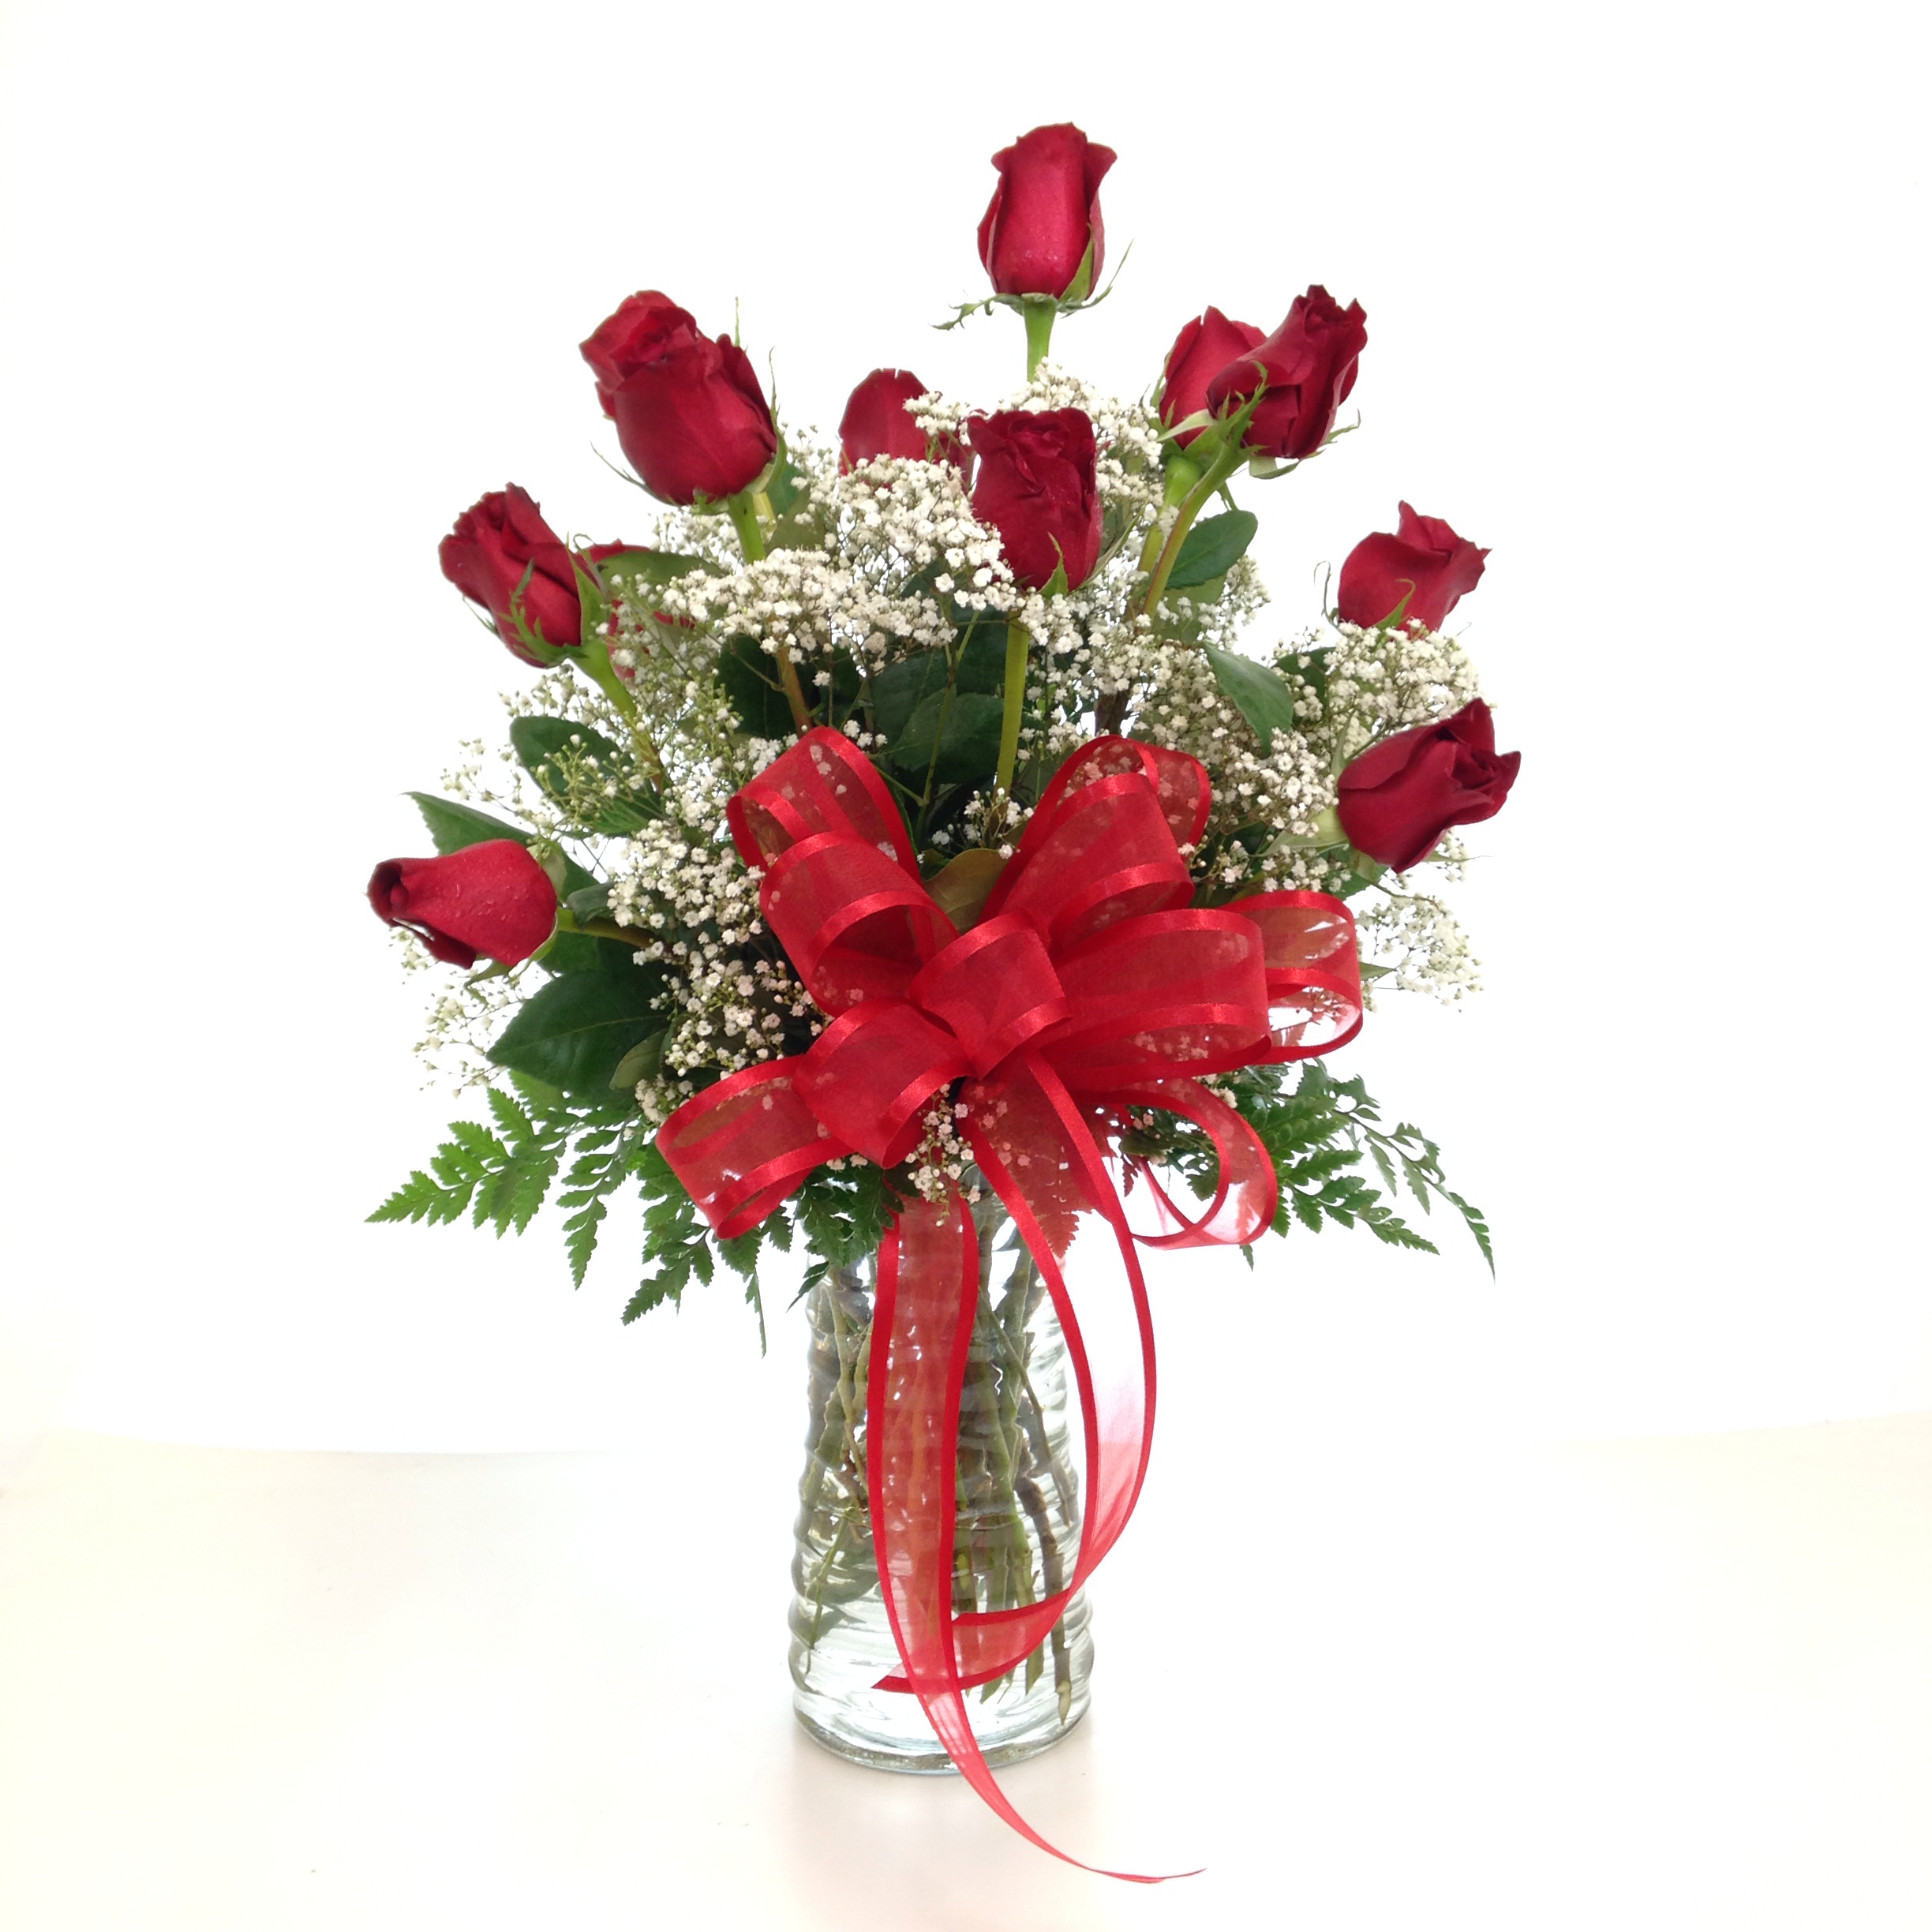 Relles florist sacramento flowers real local florist flowers one dozen premium long stem red roses arranged in a vase with filler flower and greenery reviewsmspy